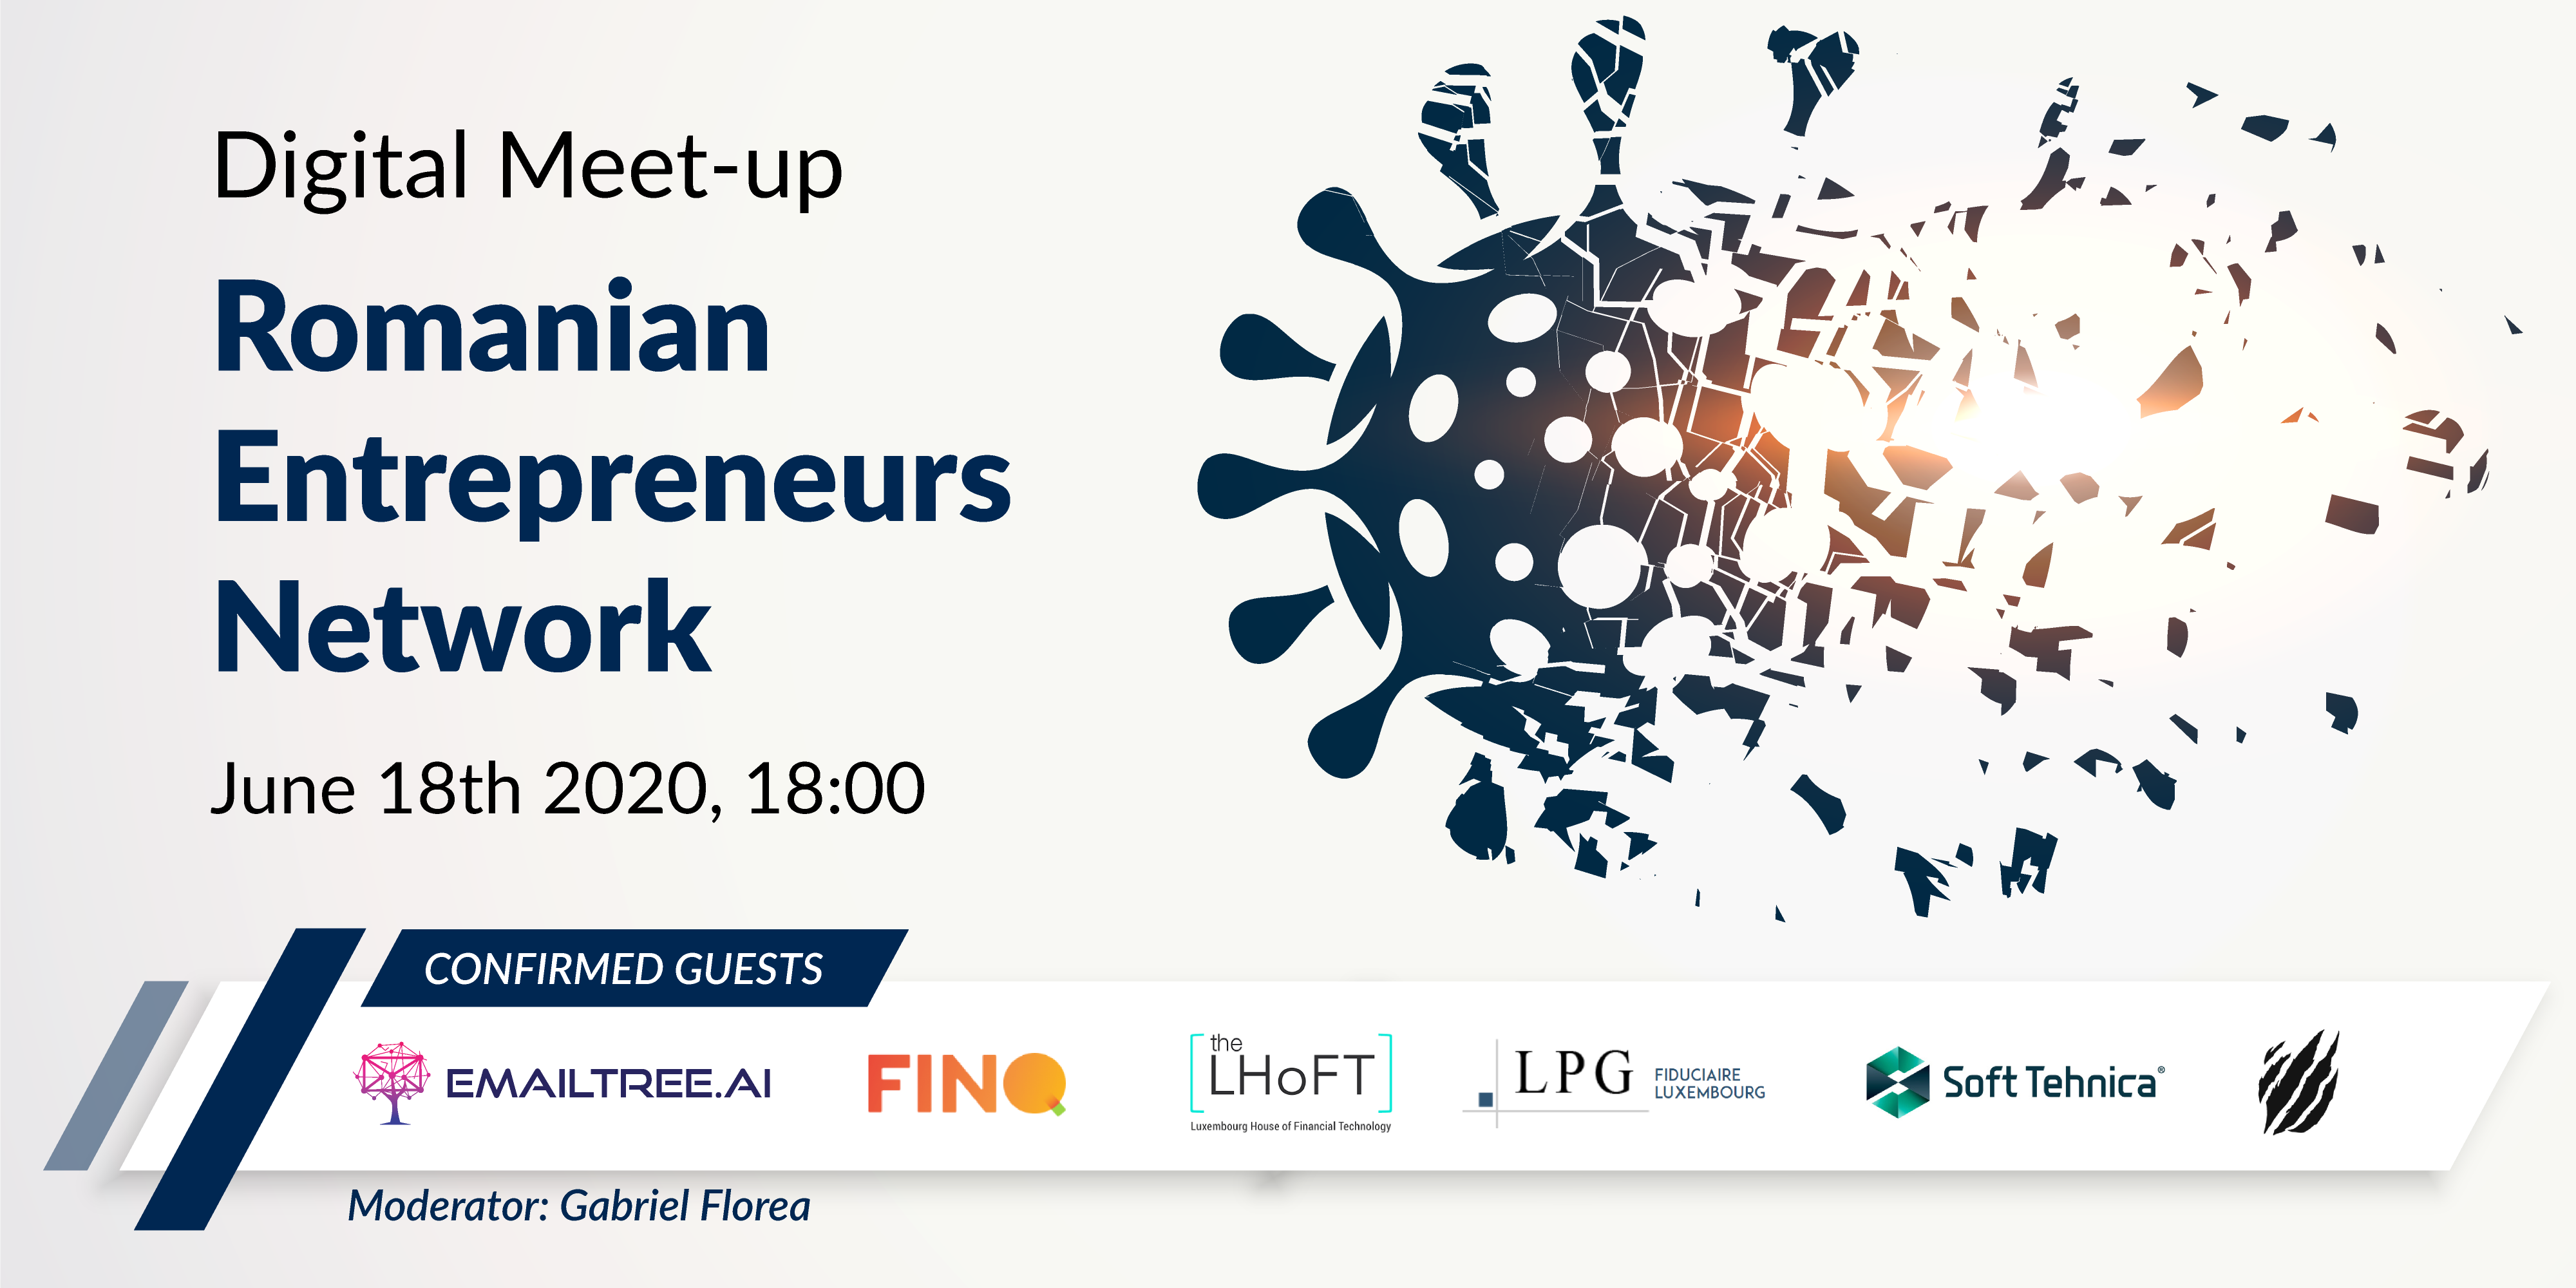 Digital MeetUP - Romanian Entrepreneurs Network